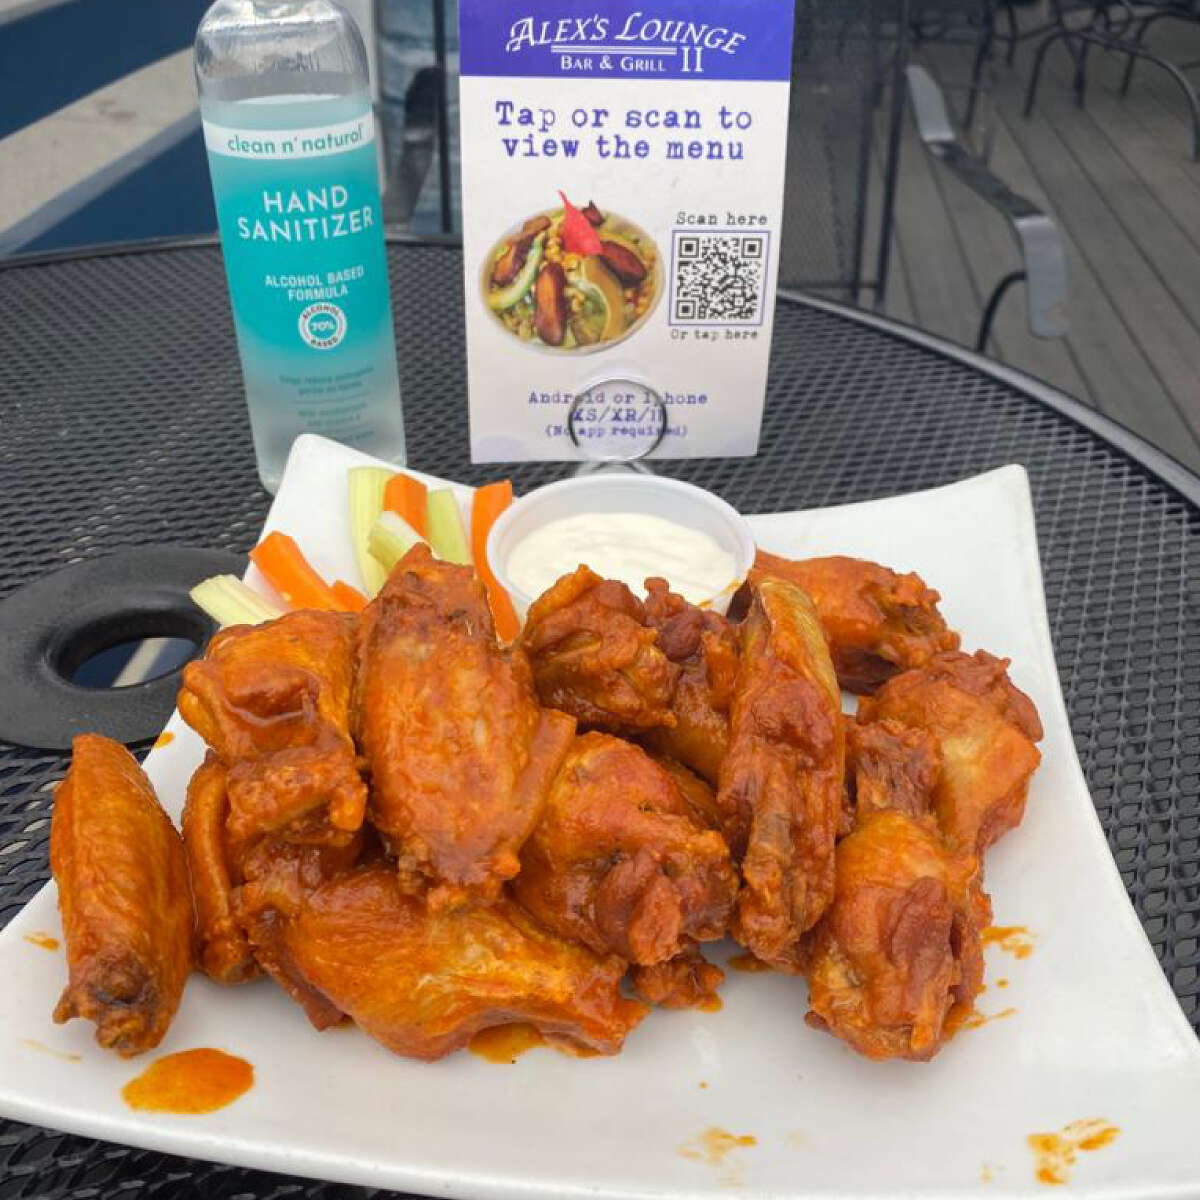 Wings from Alex's Lounge II in Elmsford, N.Y. The owner is opening a third location in Norwalk this May.